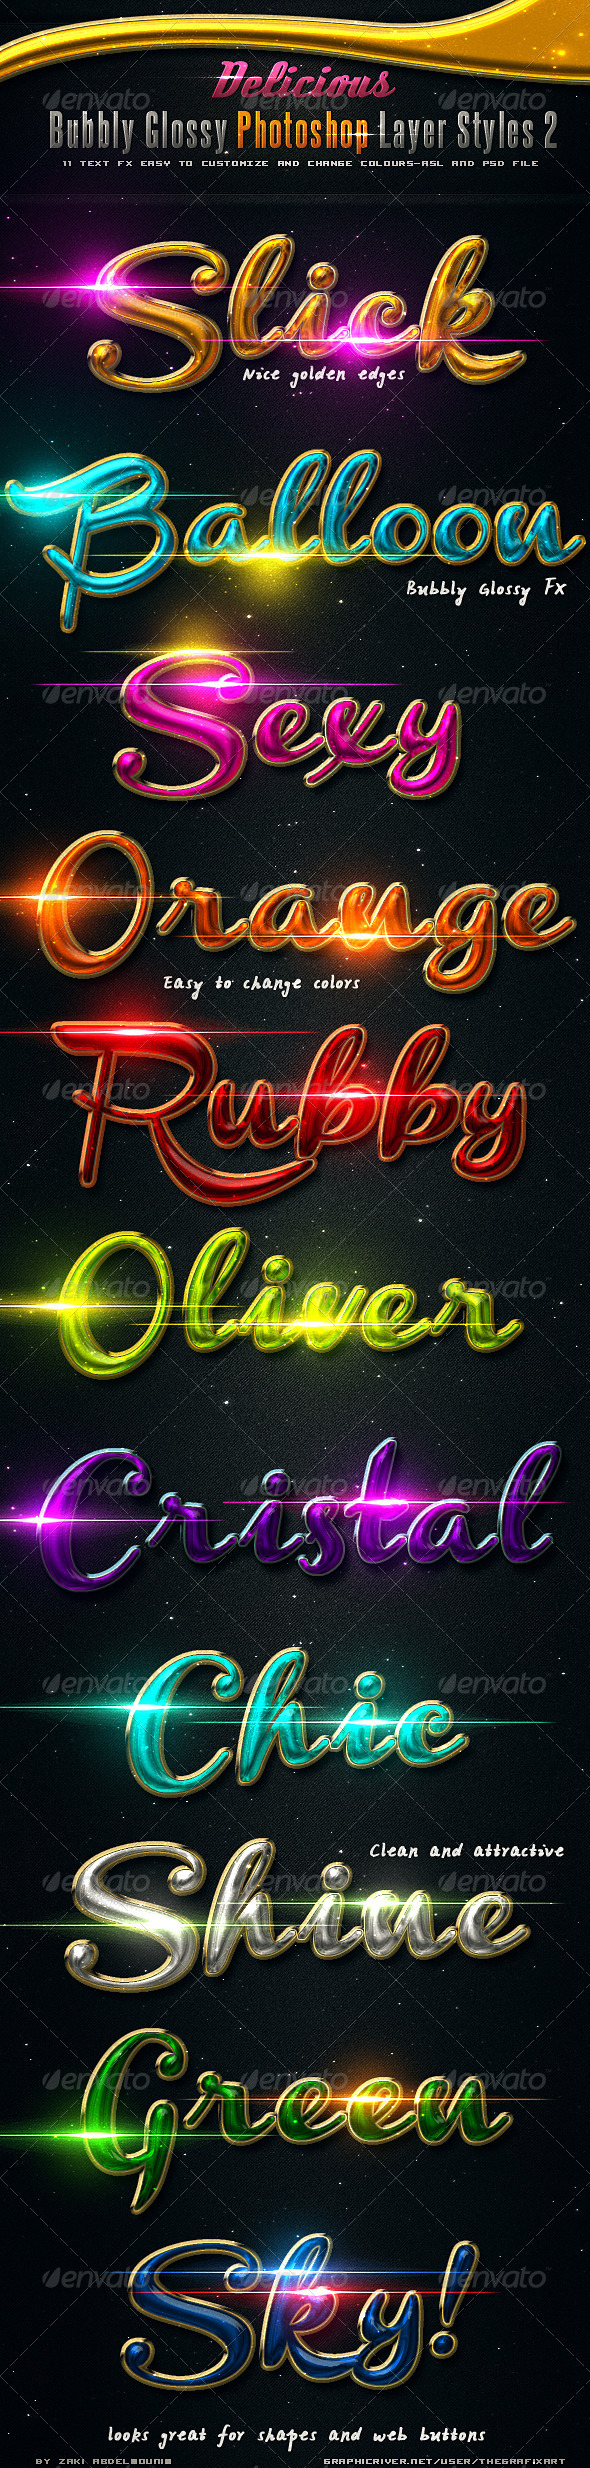 GraphicRiver Delicious Bubbly Photoshop Styles 2 3054912